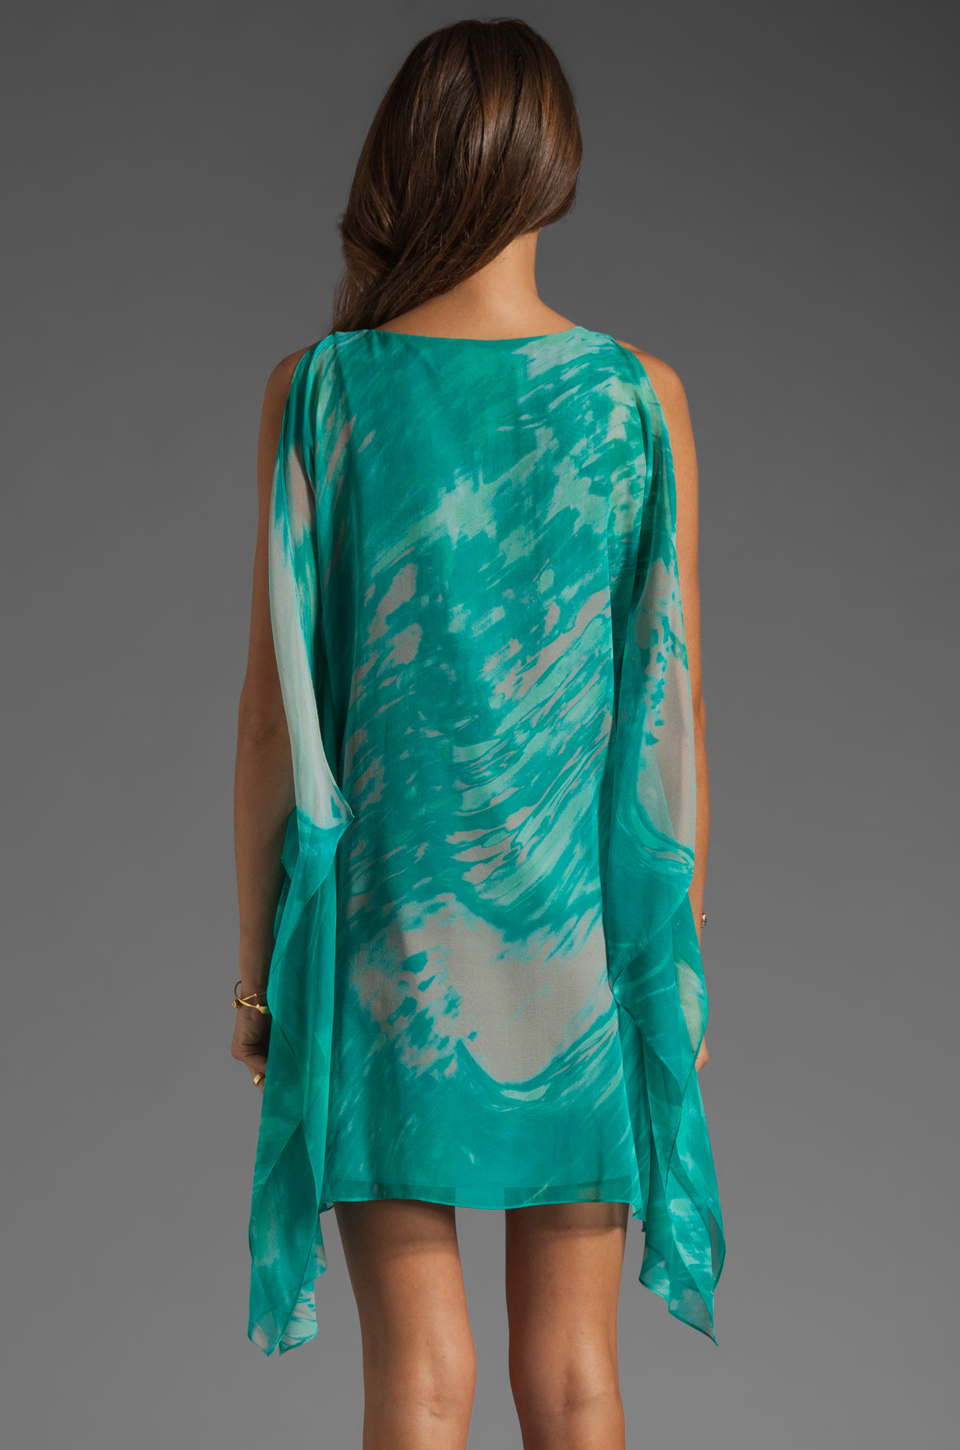 Jay Godfrey Brin Kimono Dress in Aqua Putty Multi